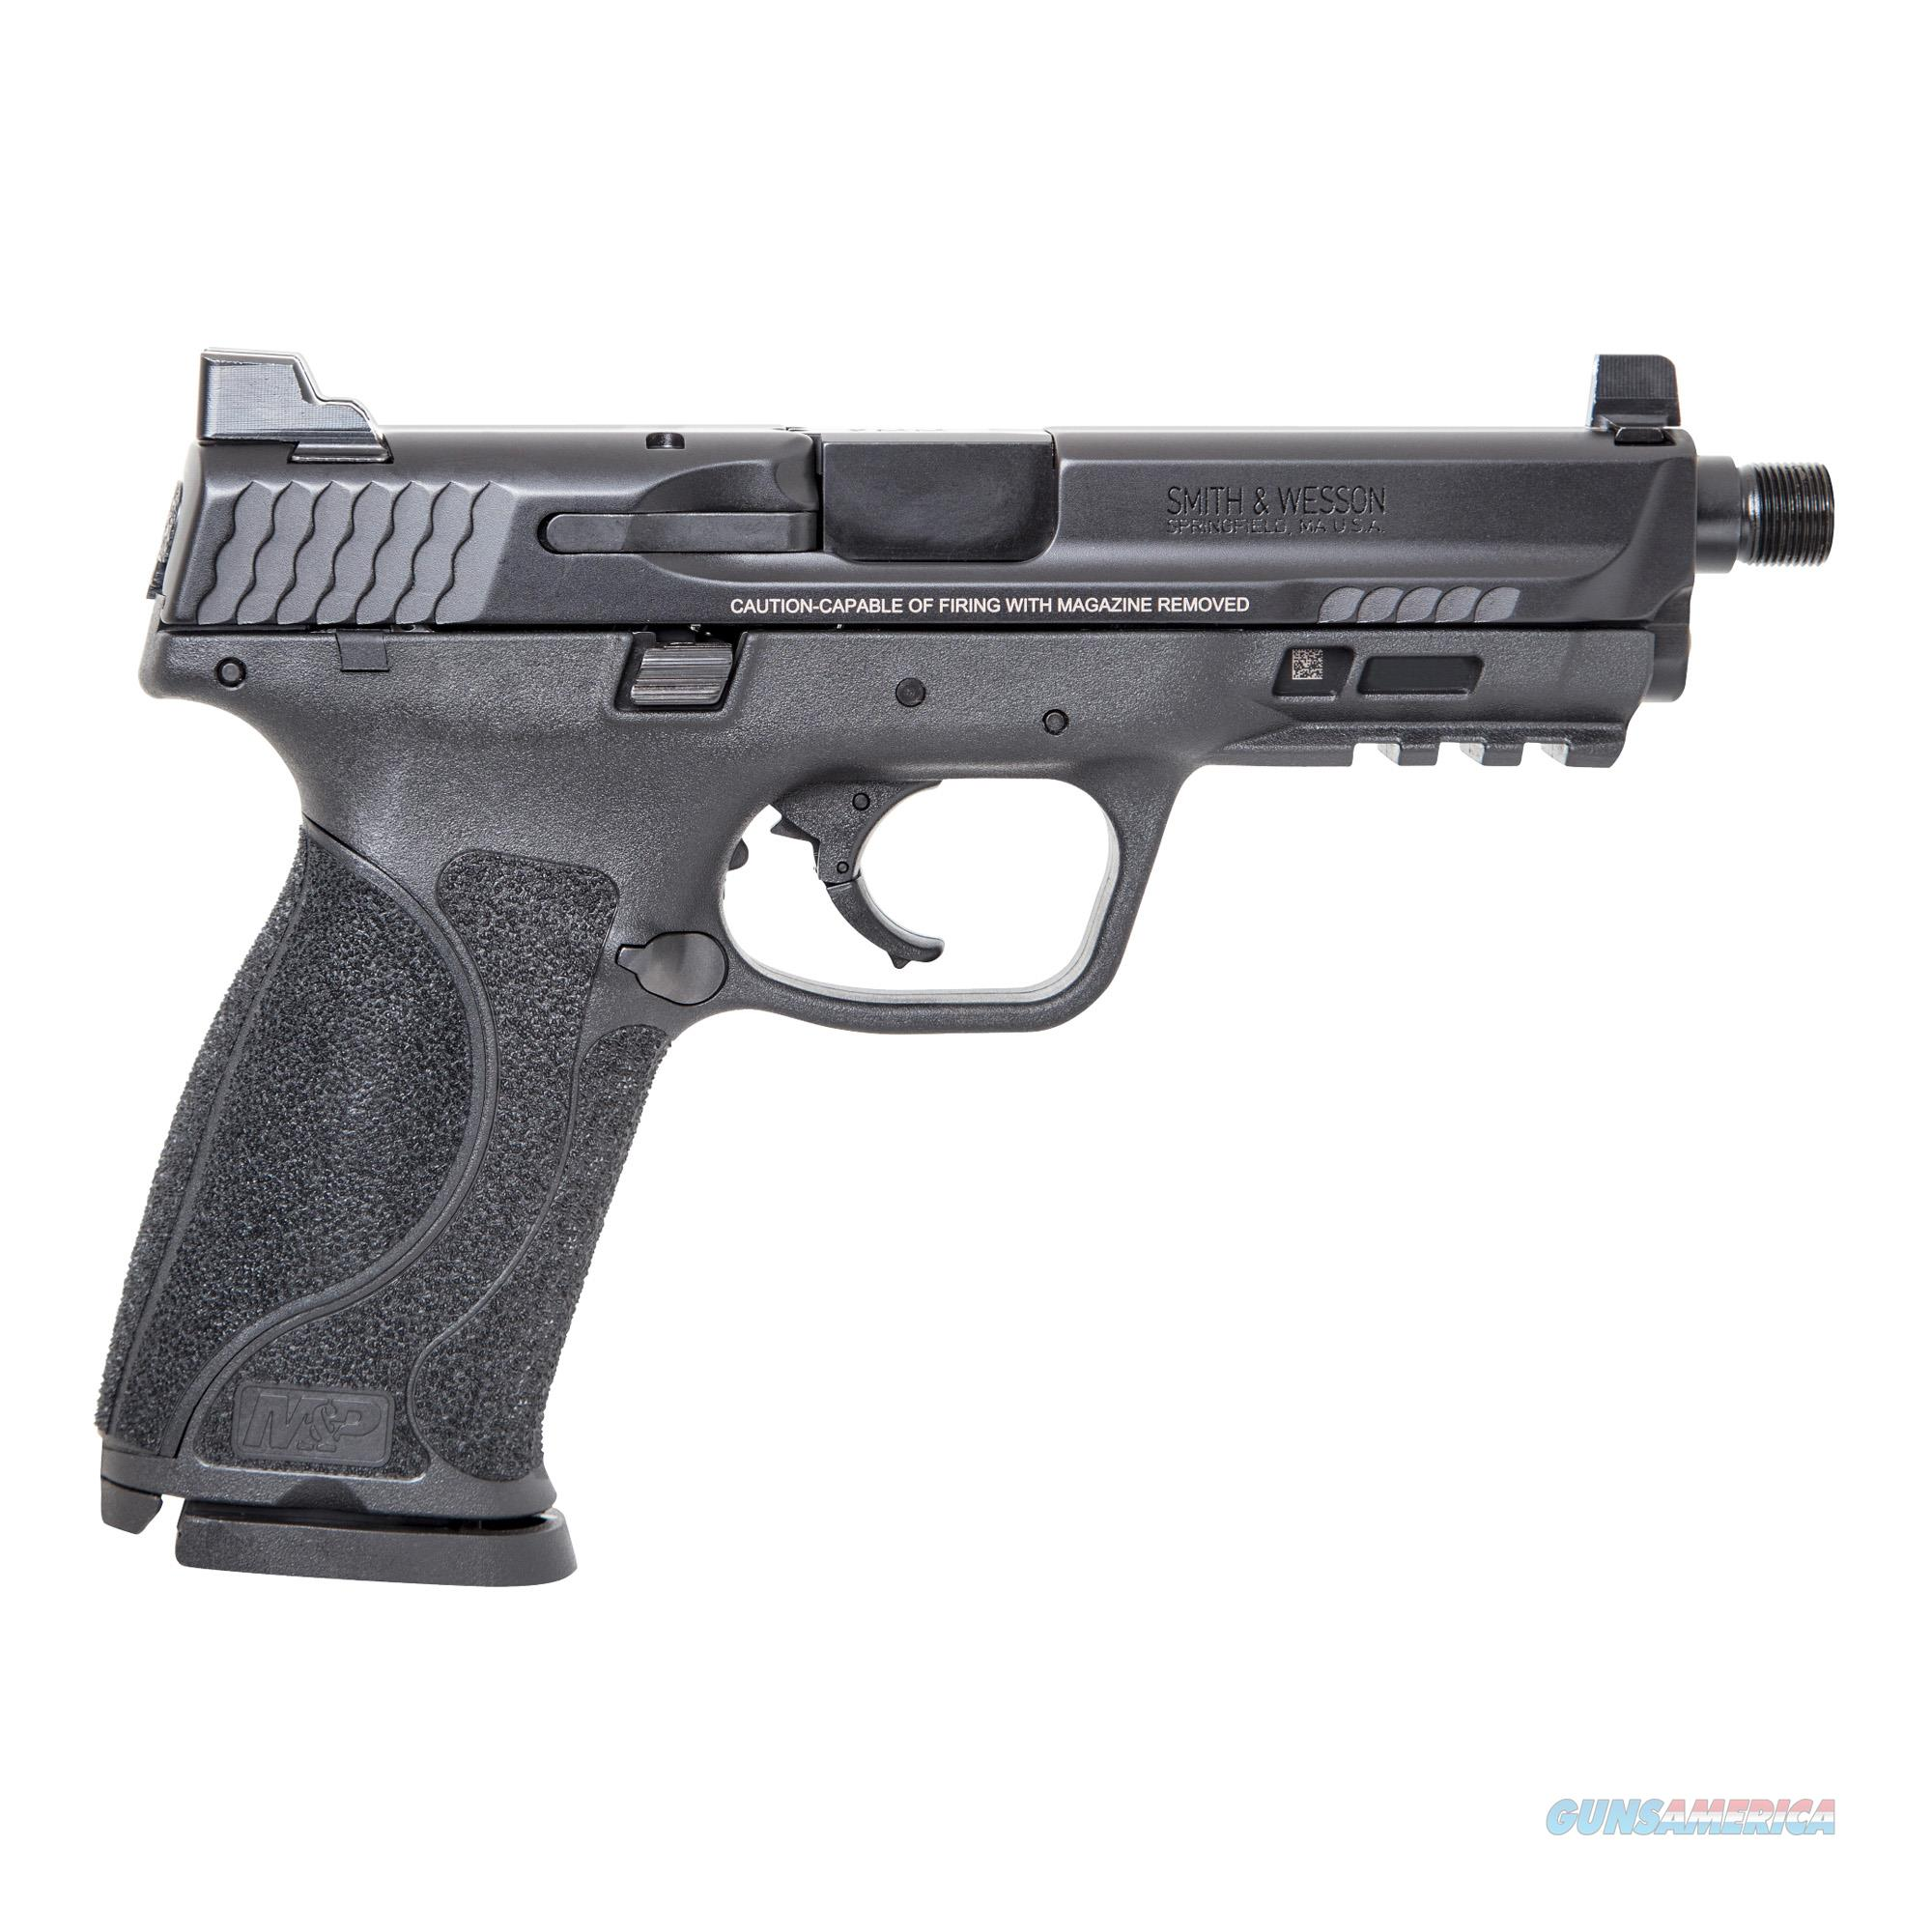 """Smith & Wesson Law Enf, LEDSW11770 M&P 2.0, Semi-automatic, Striker Fired, 9MM, 4.625"""", Polymer, Black, 17Rd, Threaded, Suppressor Sights  Guns > Pistols > Smith & Wesson Pistols - Autos > Polymer Frame"""